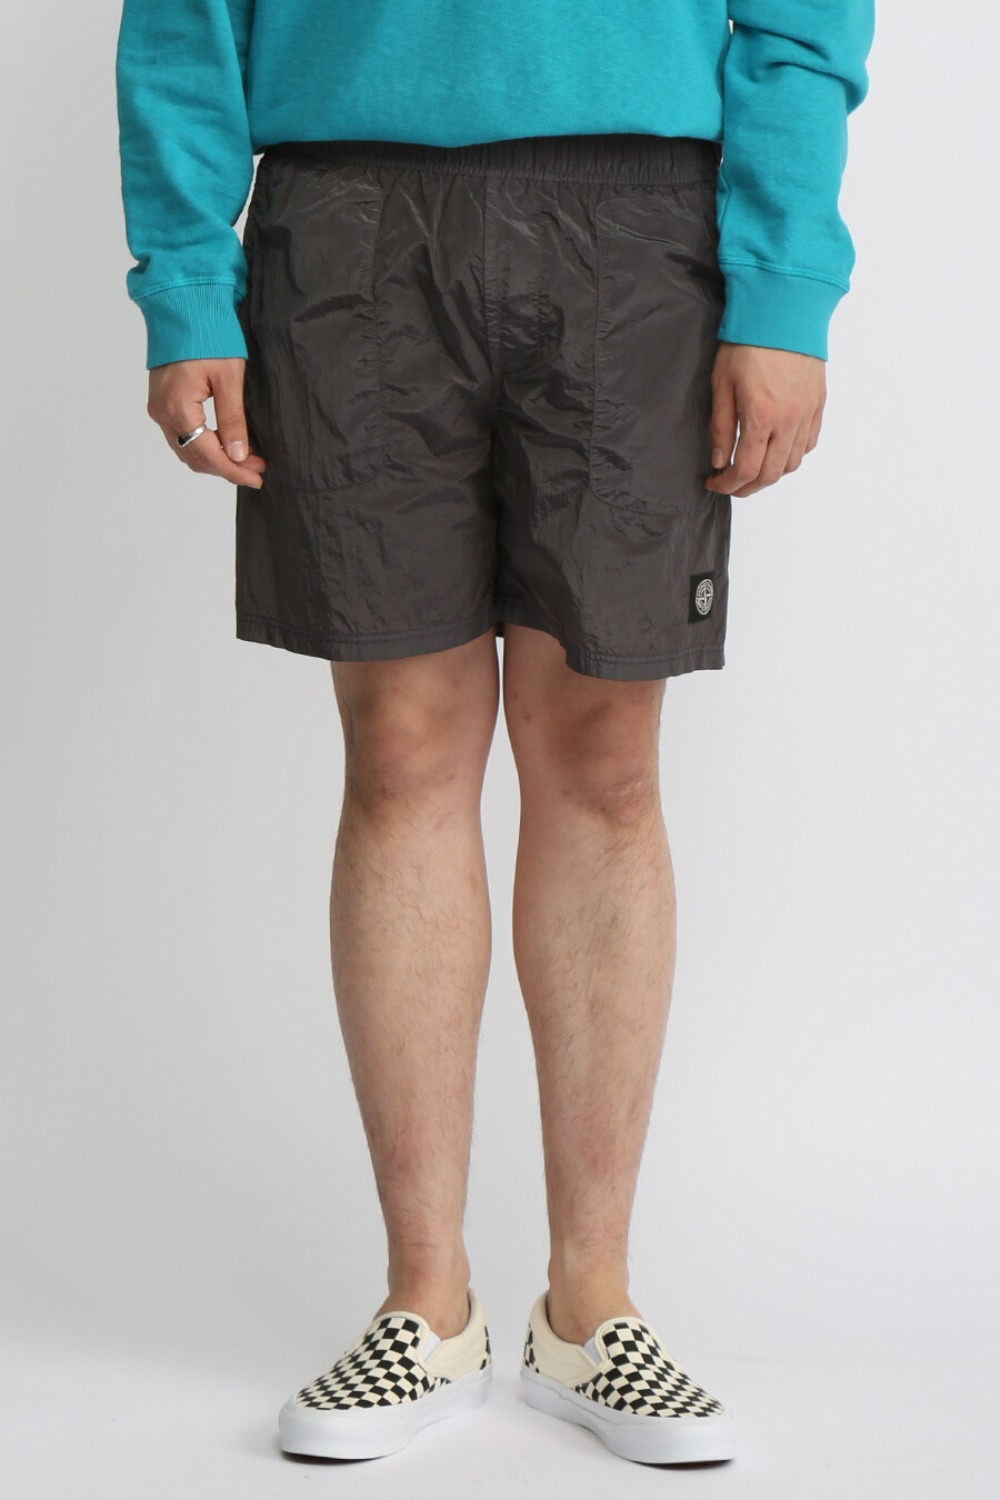 NYLON METAL SHORT PANTS(B0543) CHARCOAL